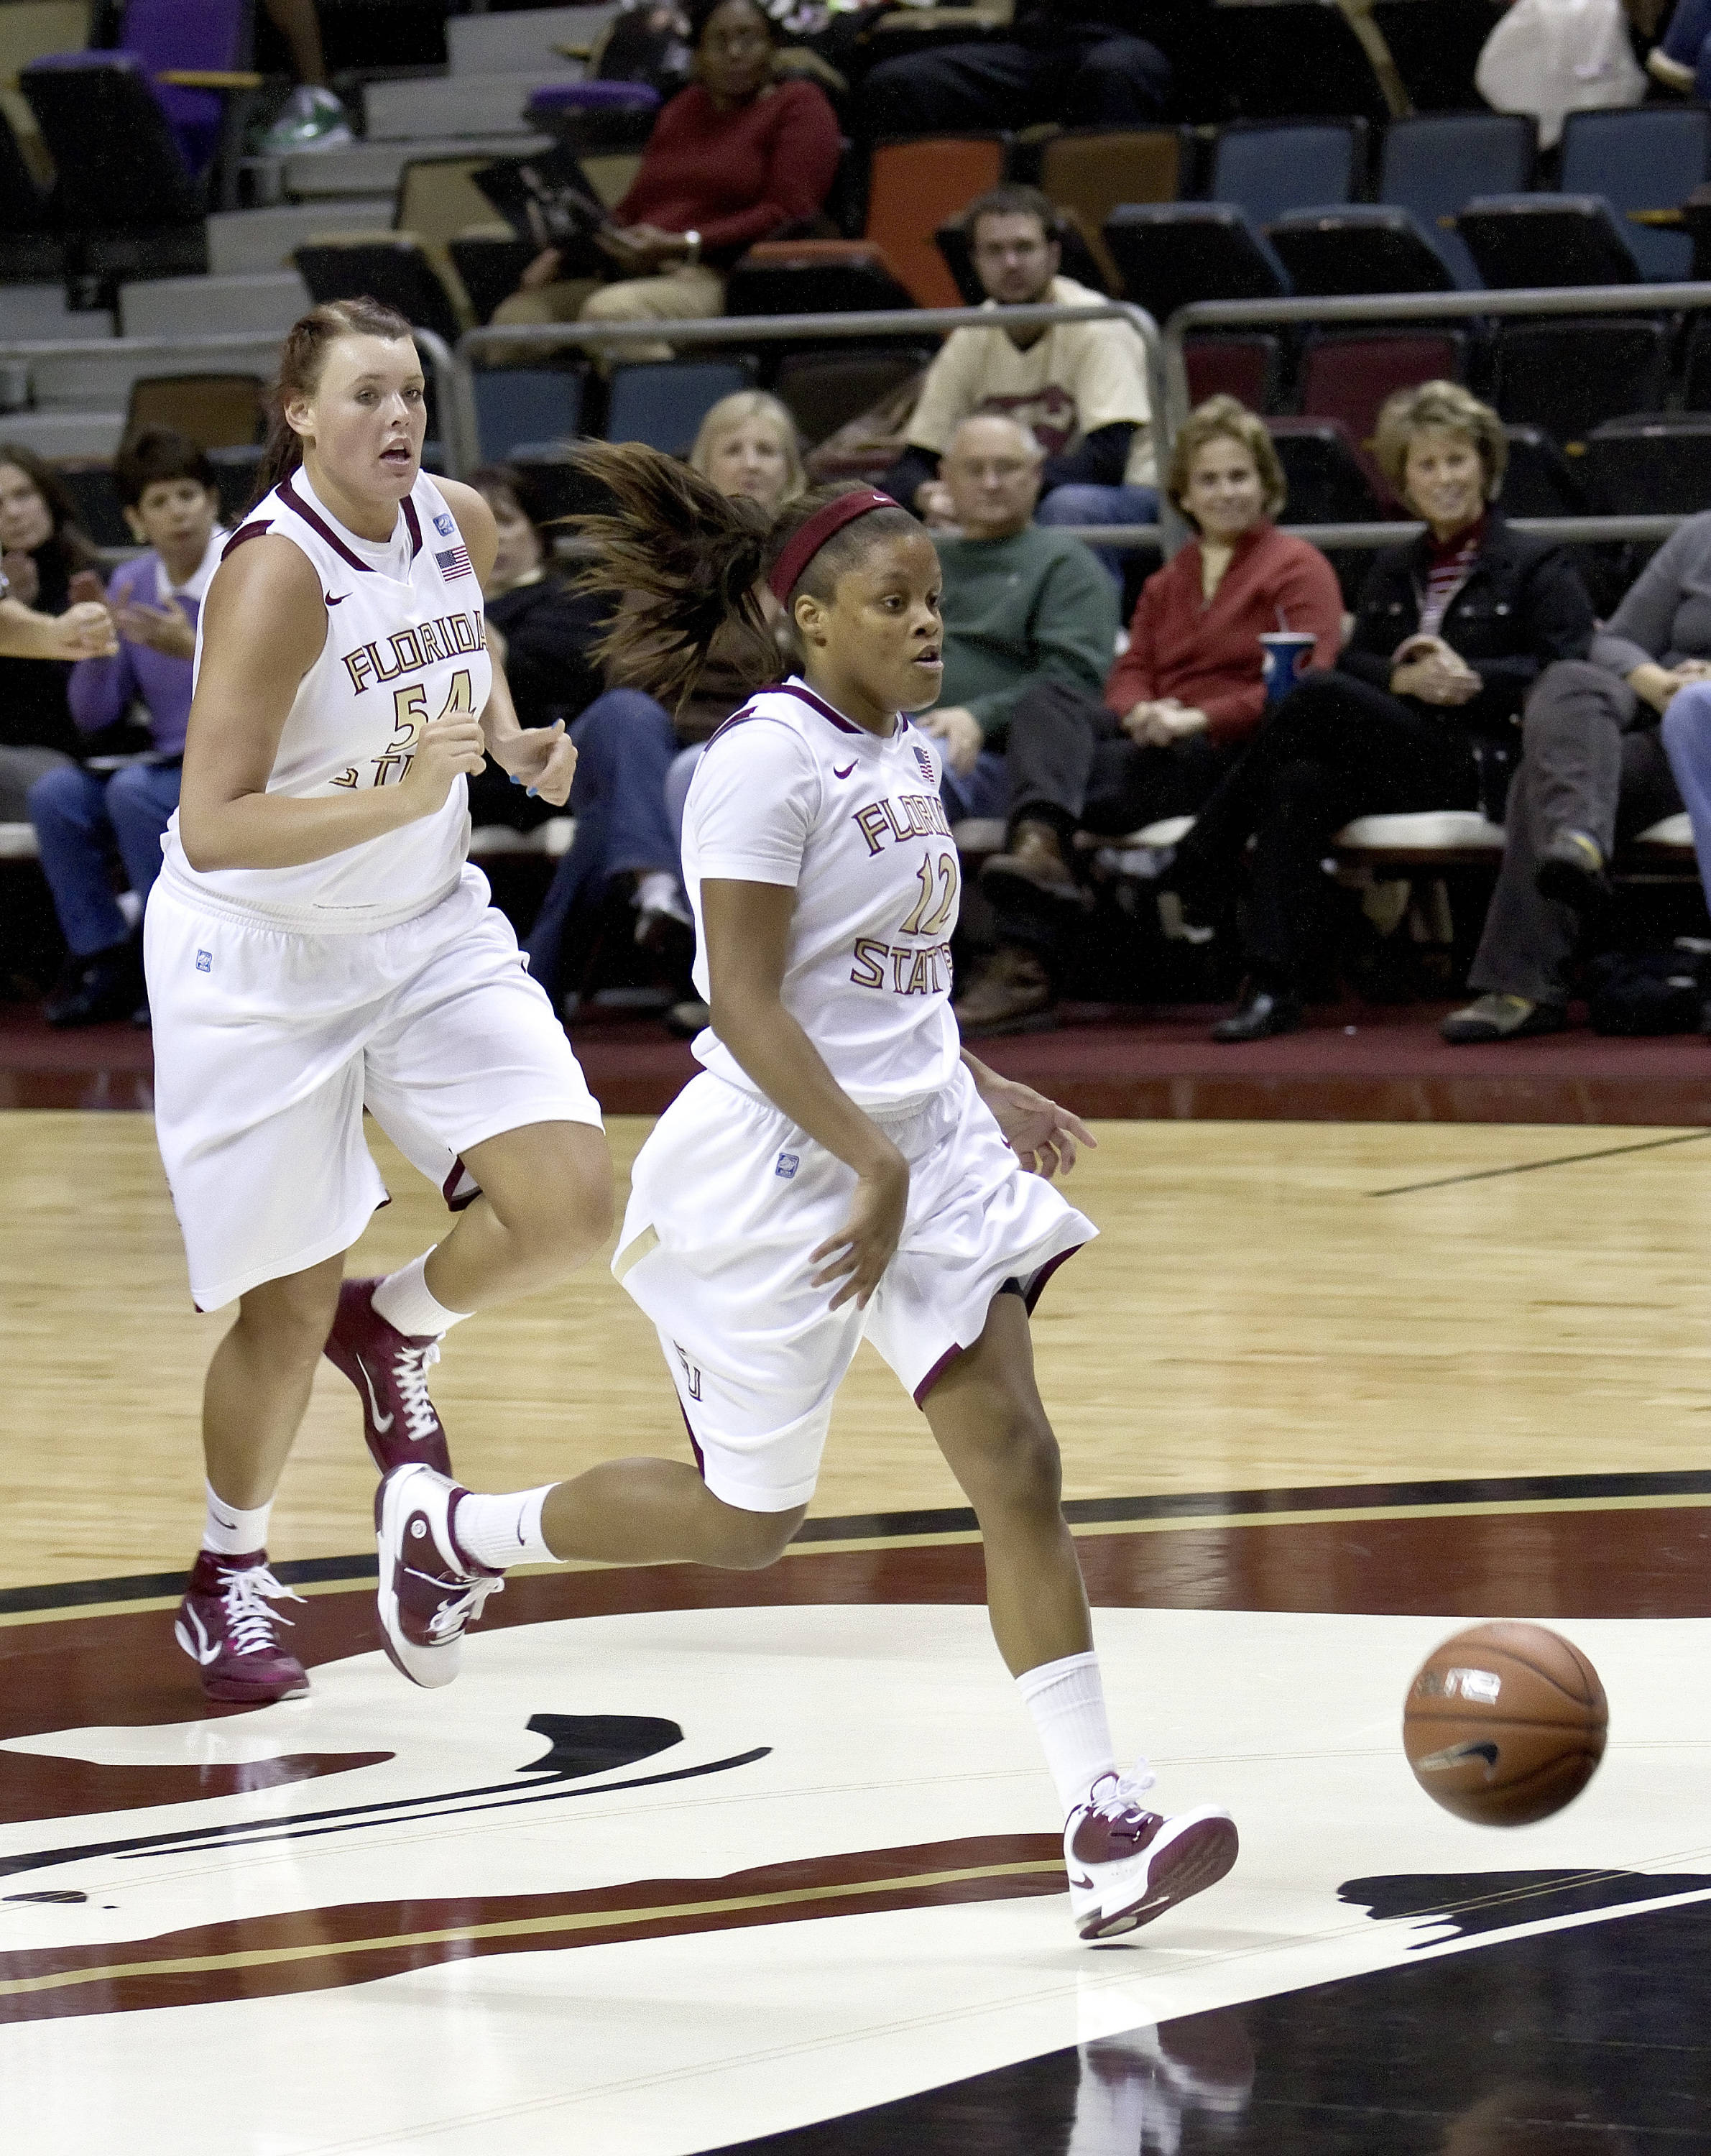 FSU vs UCF - 12/15/10 - Courtney Ward (12), Cierra Bravard (54)#$%^Photo by Steve Musco